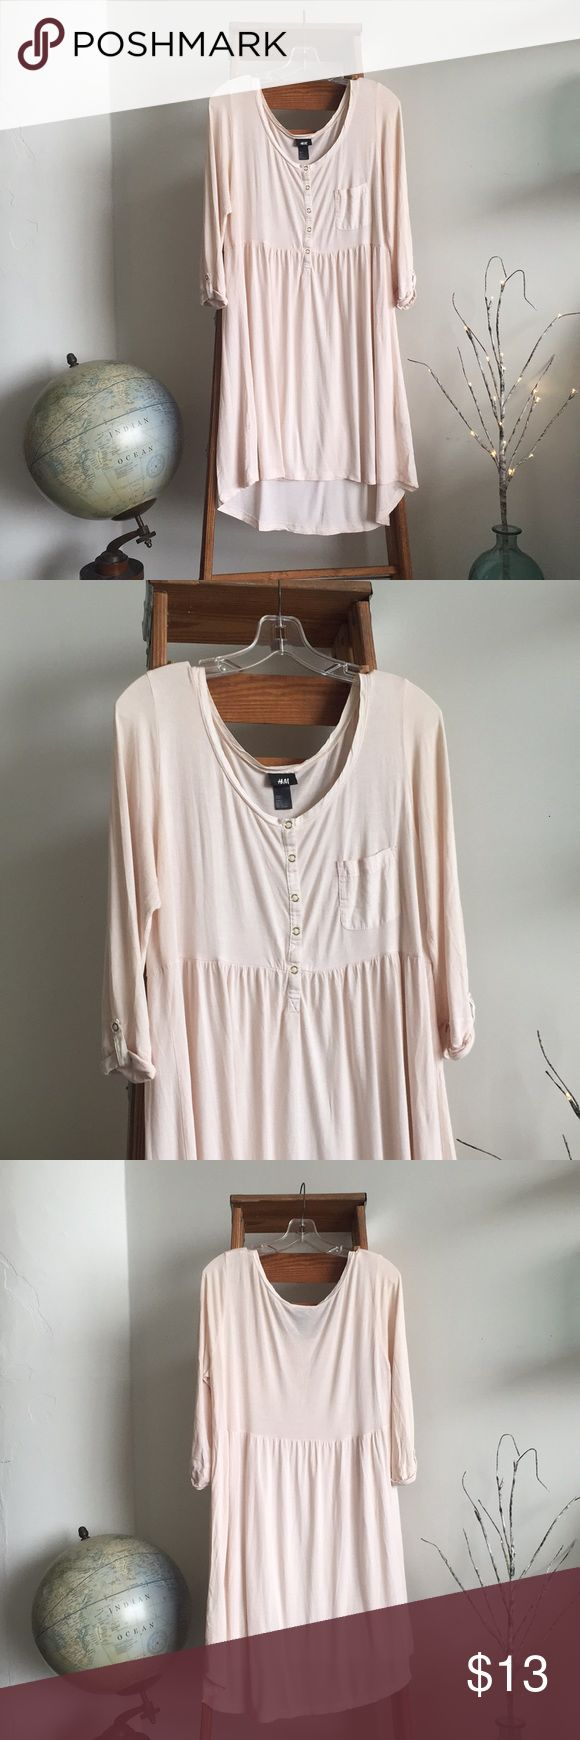 💥SALE t.w. ONLY💥H&M Babydoll 3/4 Sleeve Dress Sweet and flowy, in the lightest softest shade of pink. Cute with leggings and a sweater or even just as a nightgown 💗  Super lightweight knit 100% viscose; gold snap button detailing down the front and a snap button sleeve roll; small chest pocket; drop hem is a little longer in the back  Lightly loved- hence the awesome price! Last photos show very light pilling under arms and on rear end, and a small hole near bottom right hemline on the…